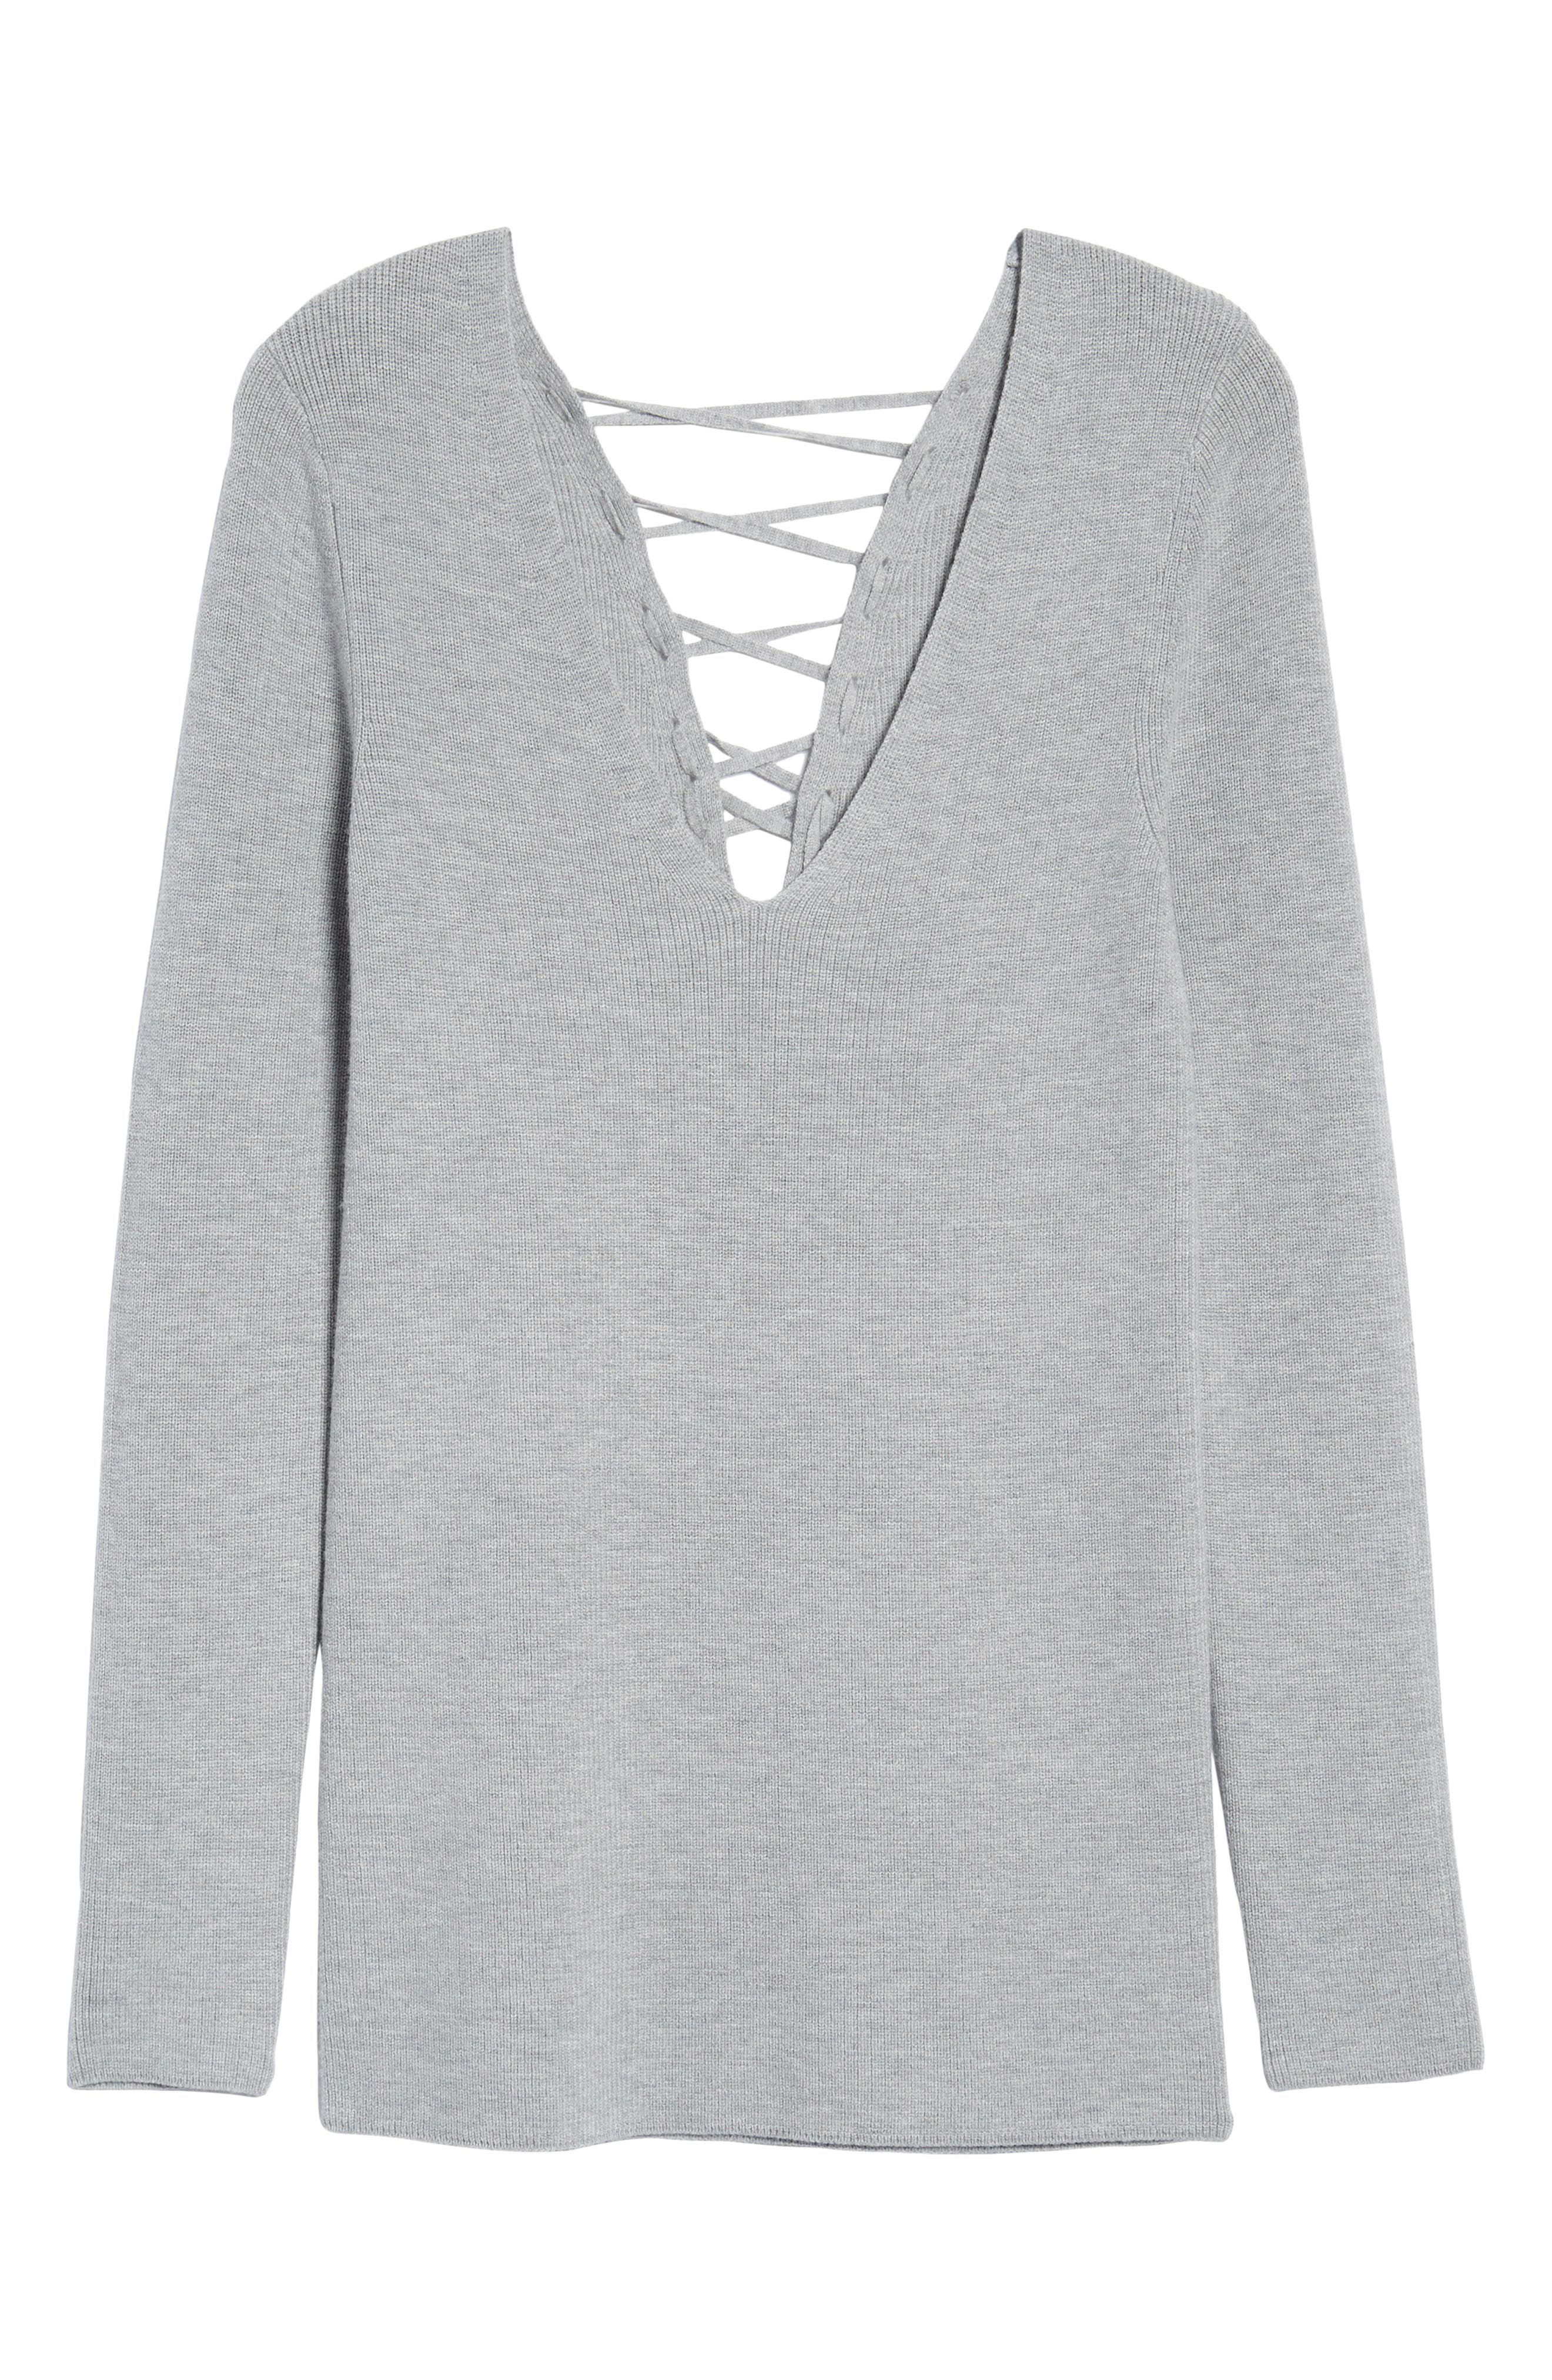 Lace-Up Back Sweater,                             Alternate thumbnail 6, color,                             030